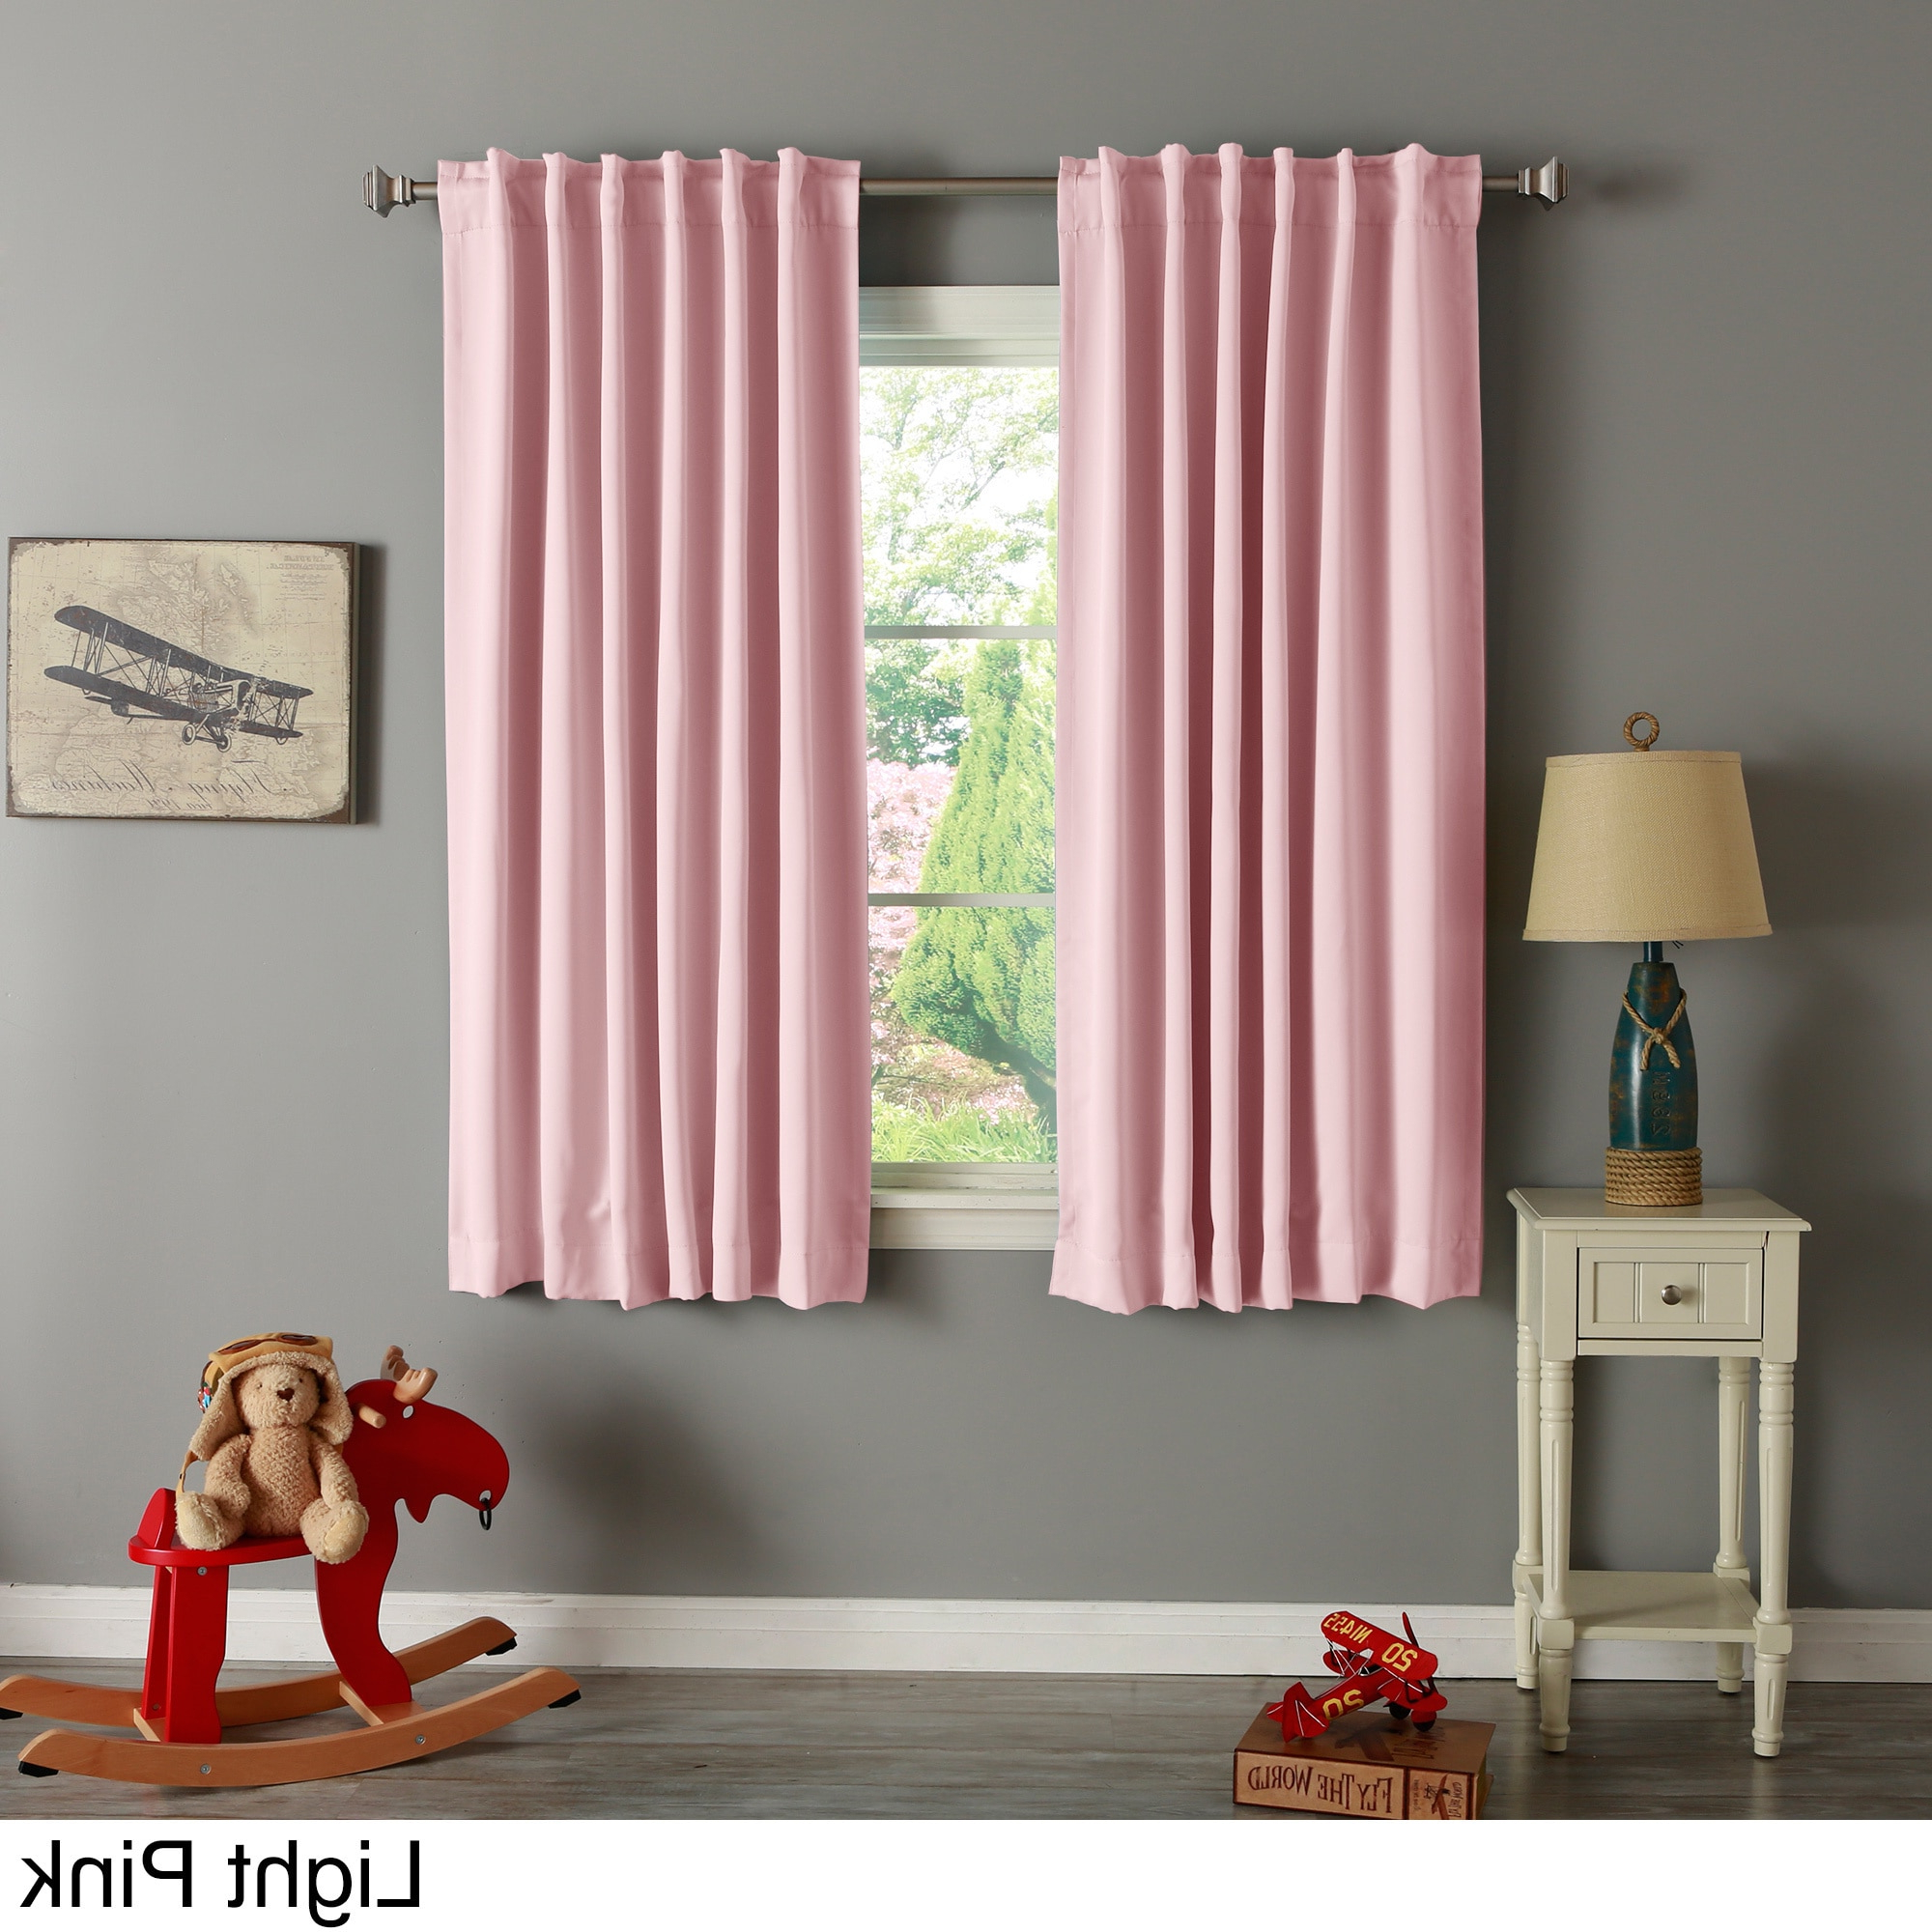 Aurora Home Solid Insulated Thermal Blackout 63 Inch Curtain Intended For Best And Newest Solid Insulated Thermal Blackout Curtain Panel Pairs (View 2 of 20)